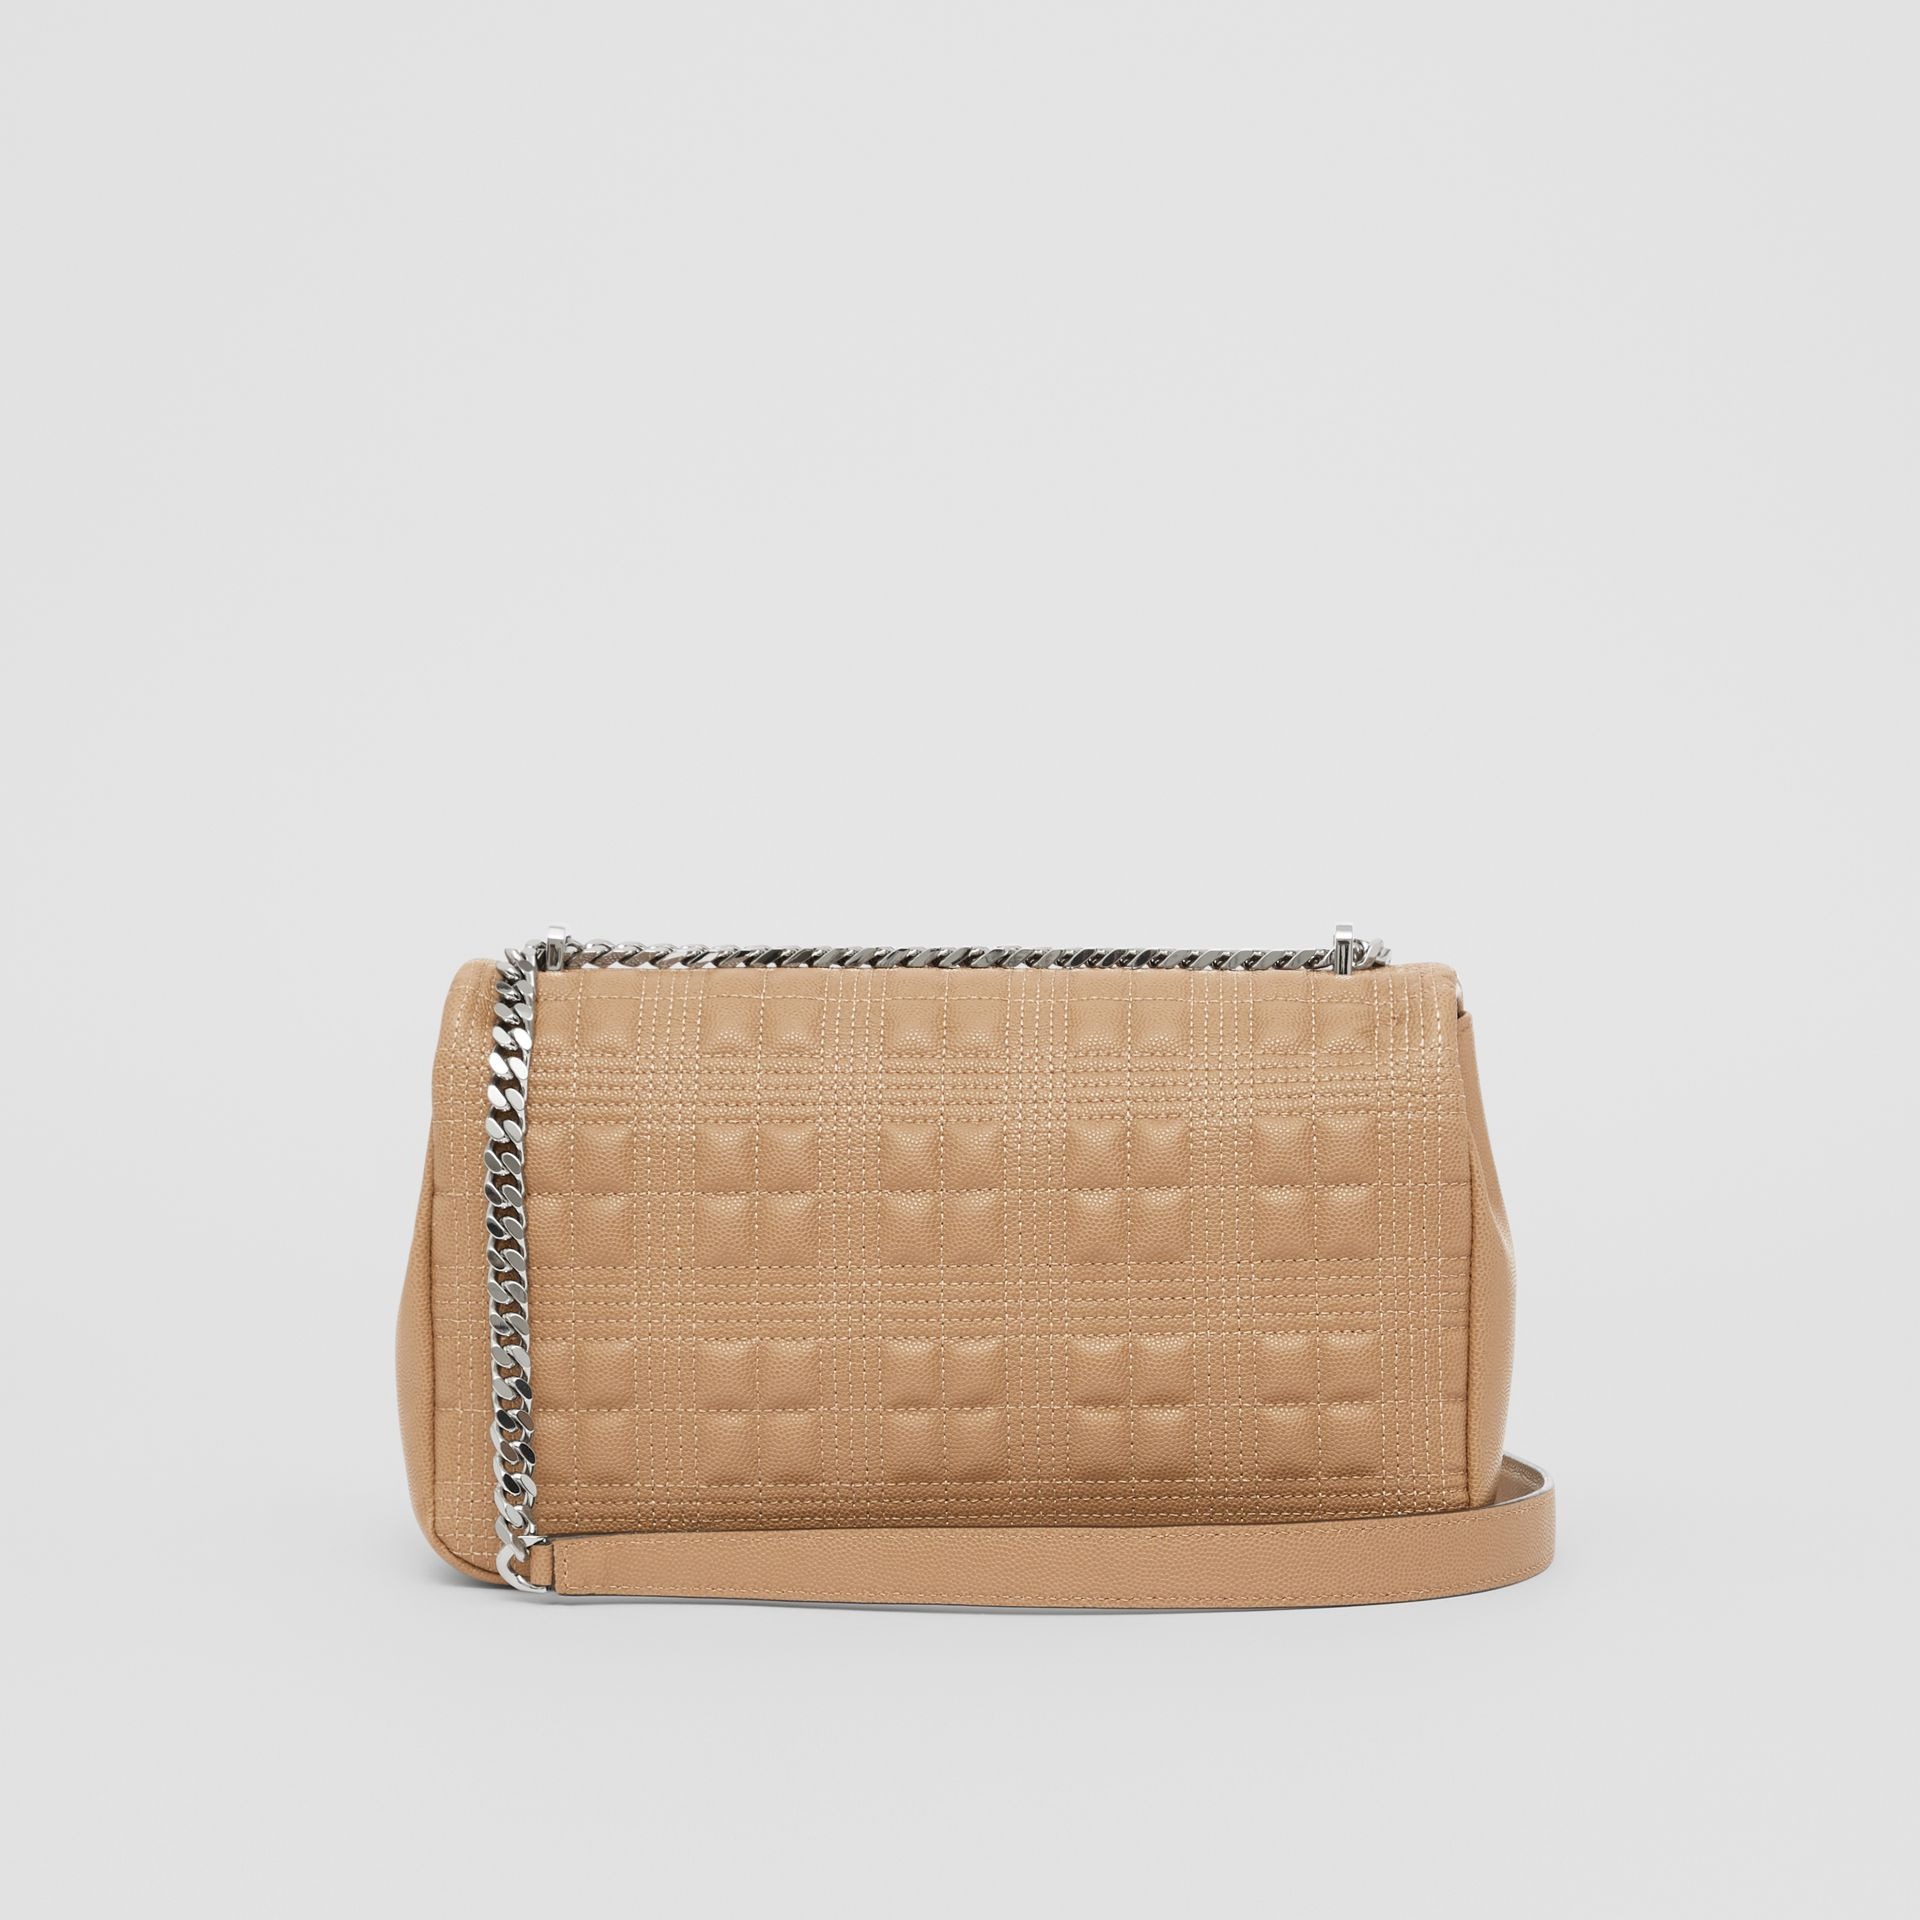 Medium Quilted Grainy Leather Lola Bag in Camel/palladium - Women | Burberry - gallery image 7